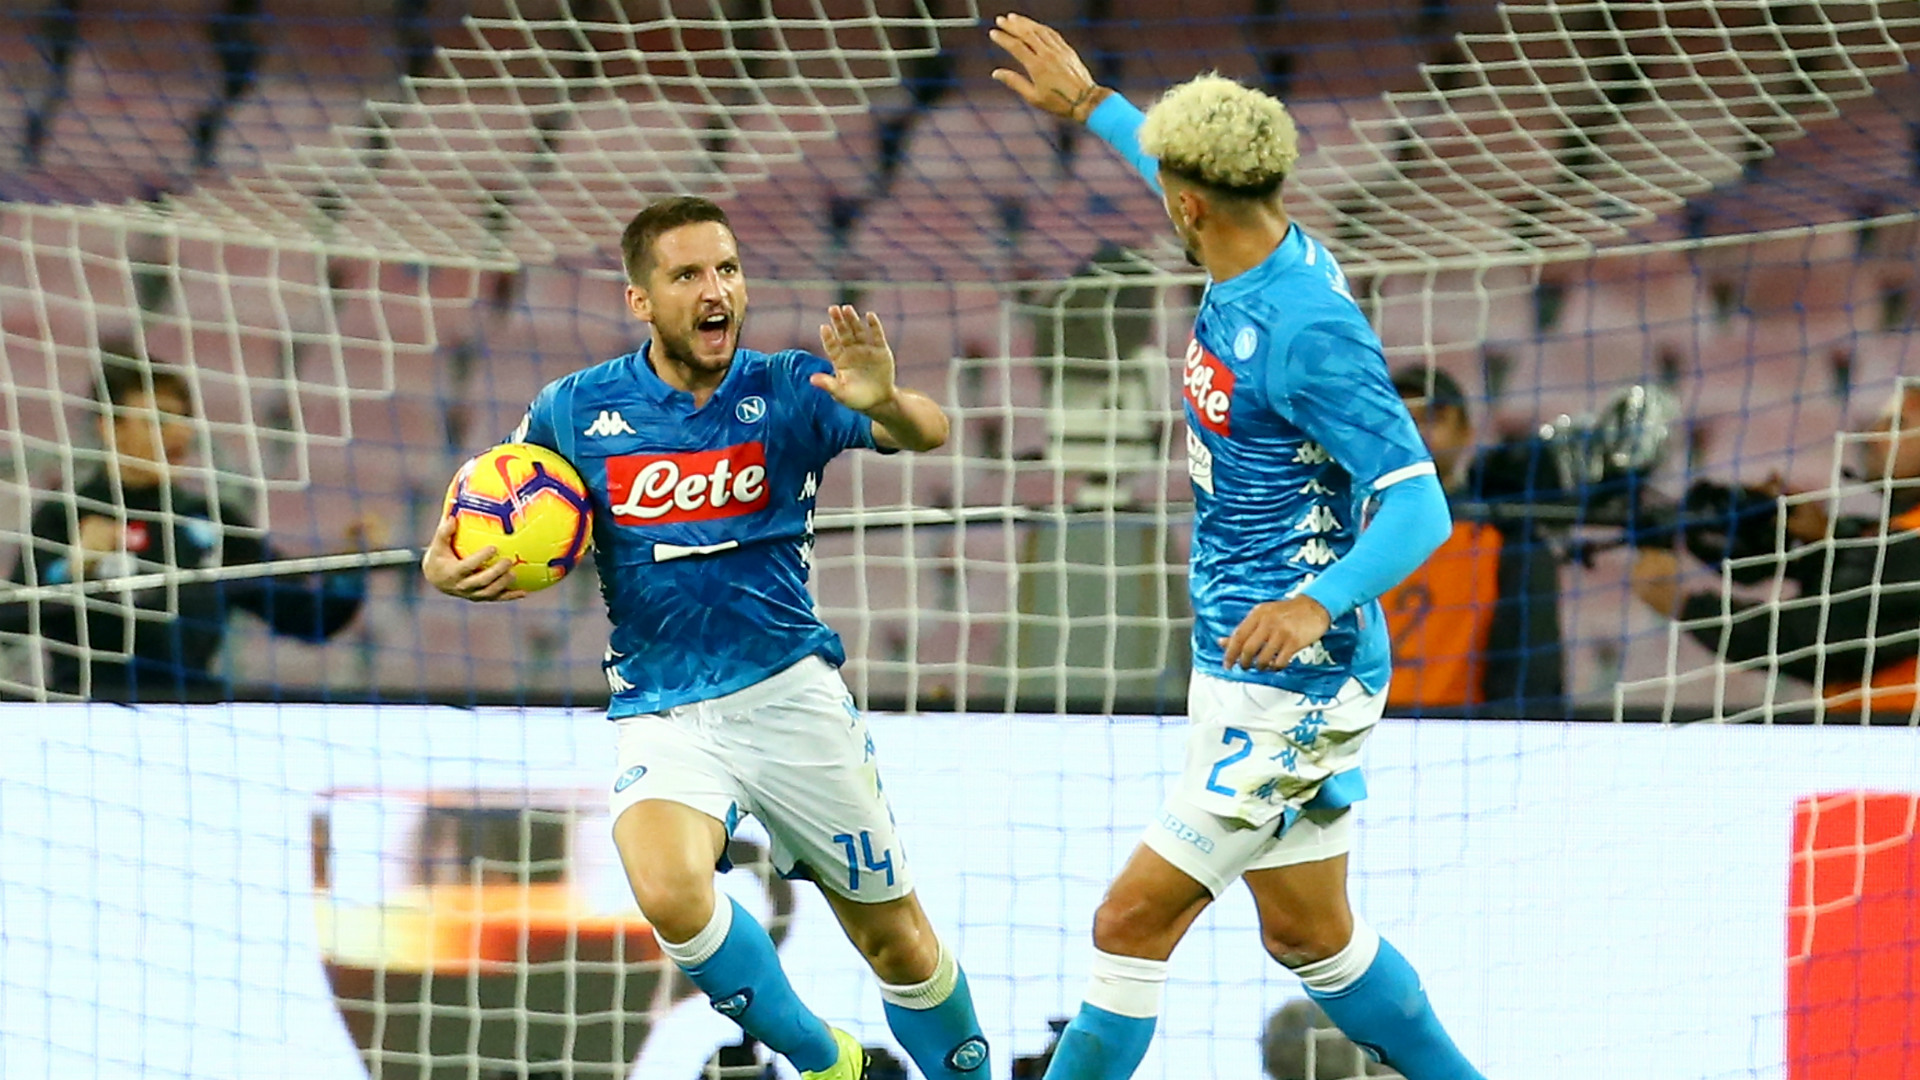 Dries Mertens SSC Napoli AS Roma 28102018